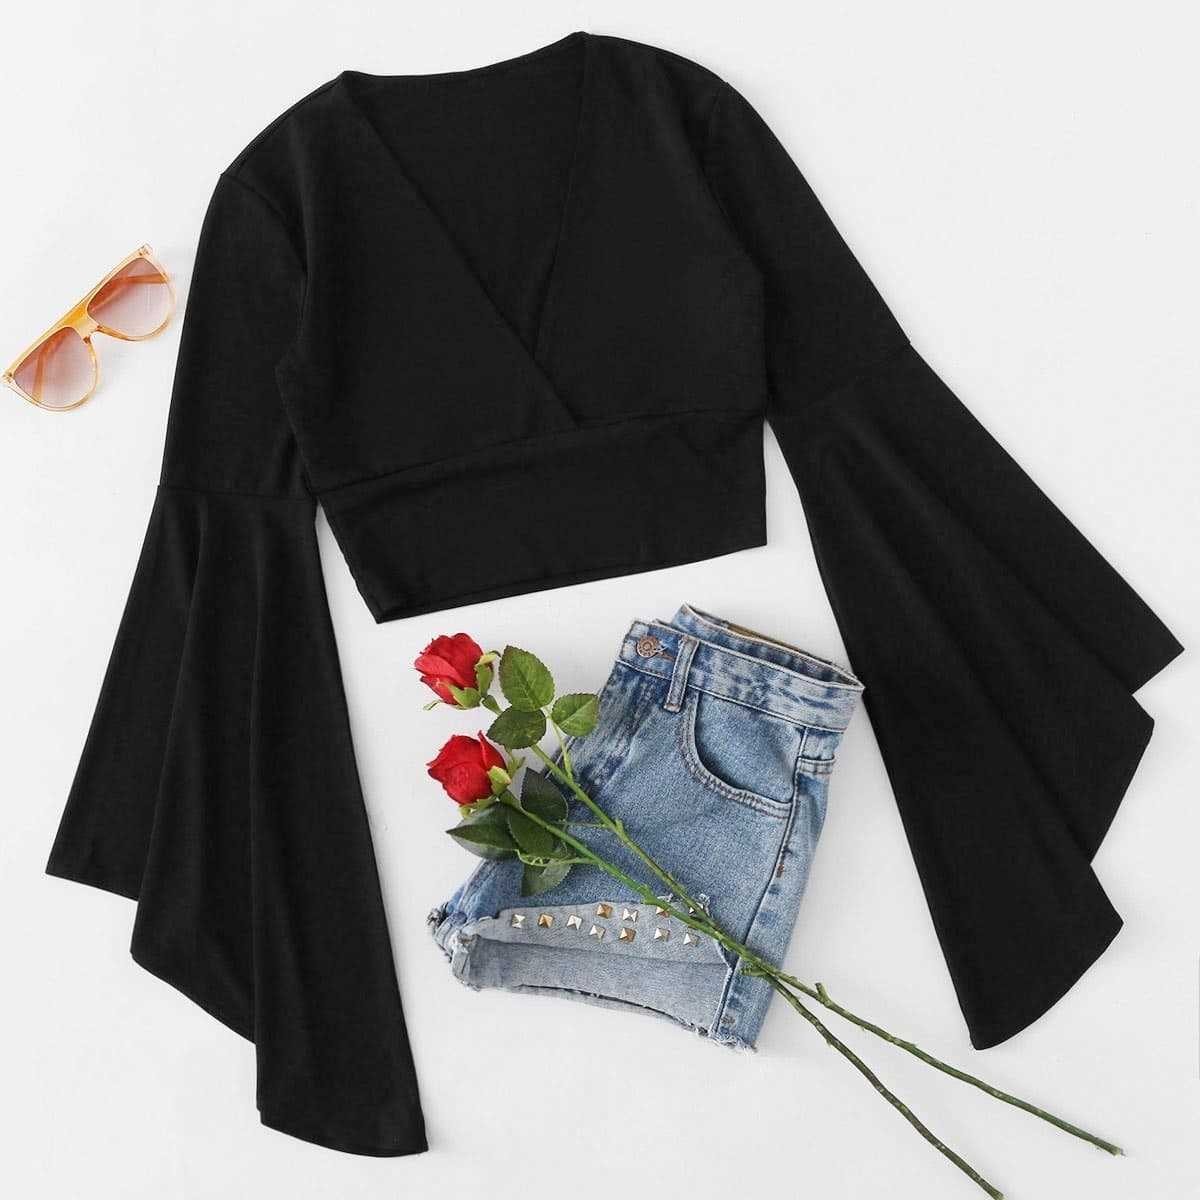 Fluted Sleeve Surplice Tee in Black by ROMWE on GOOFASH